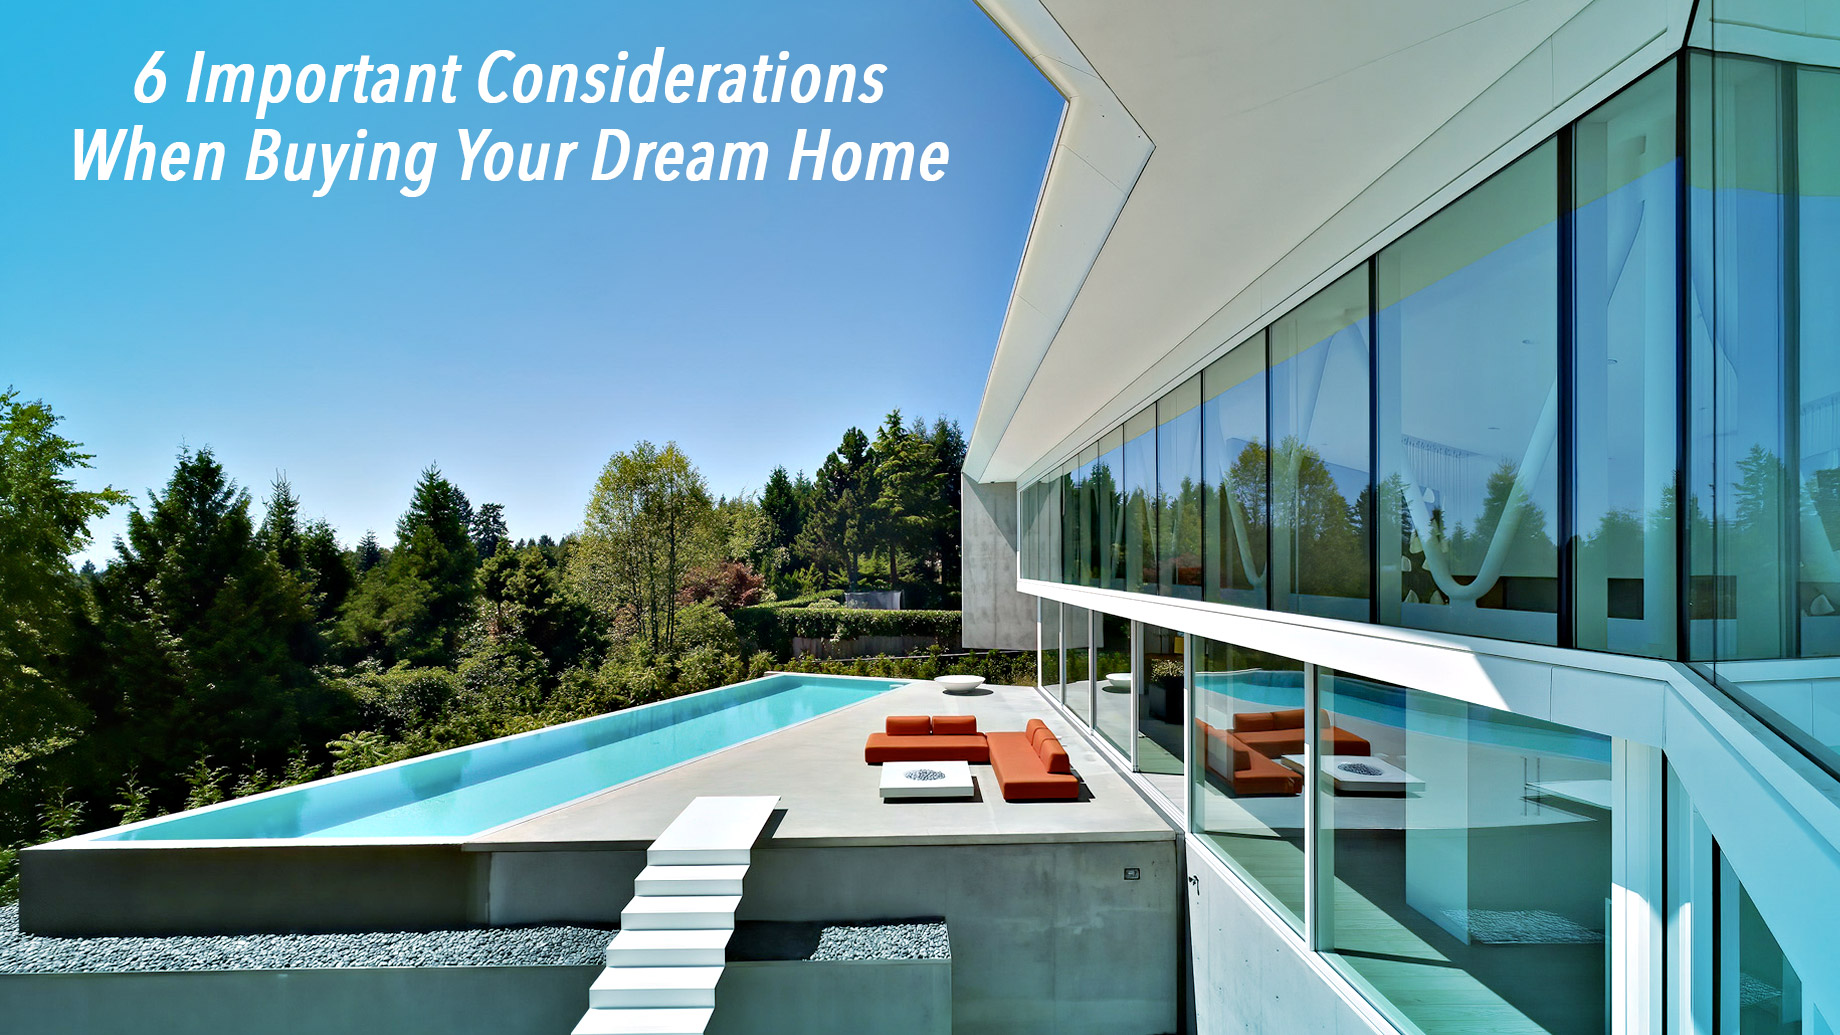 6 Important Considerations When Buying Your Dream Home